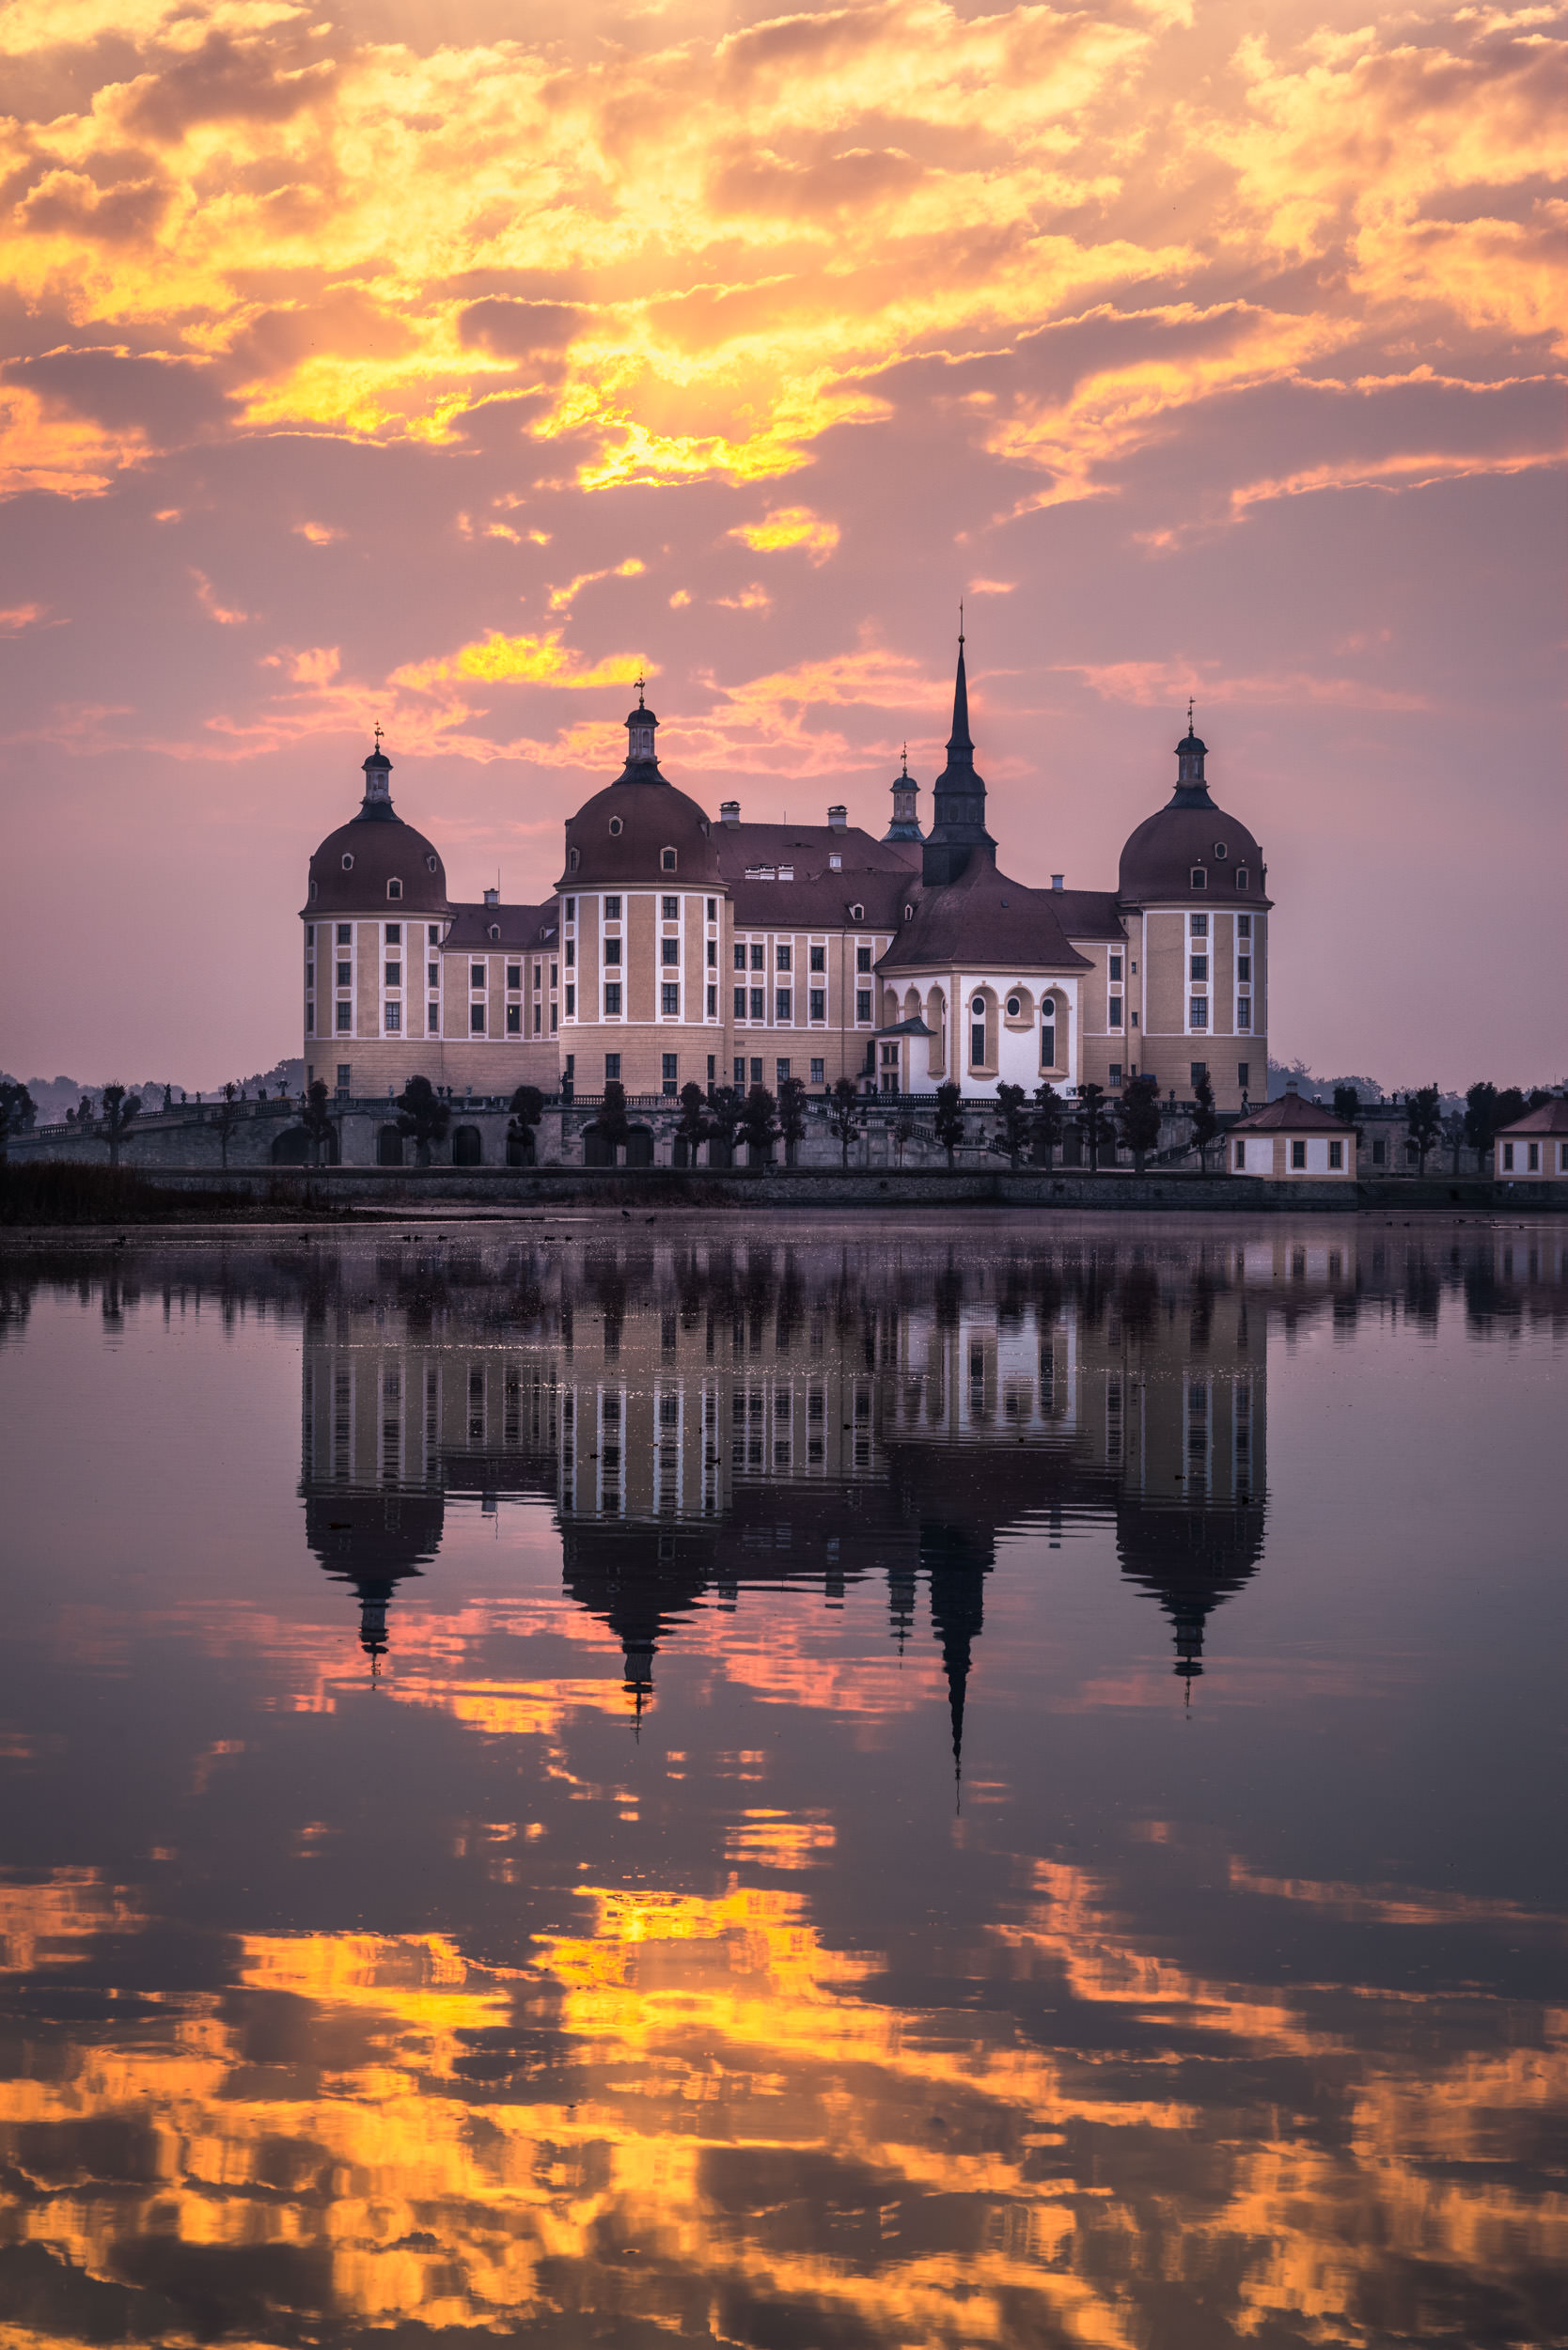 Burning Skye at Castle Moritzburg - Germany - City & Architecture Photography